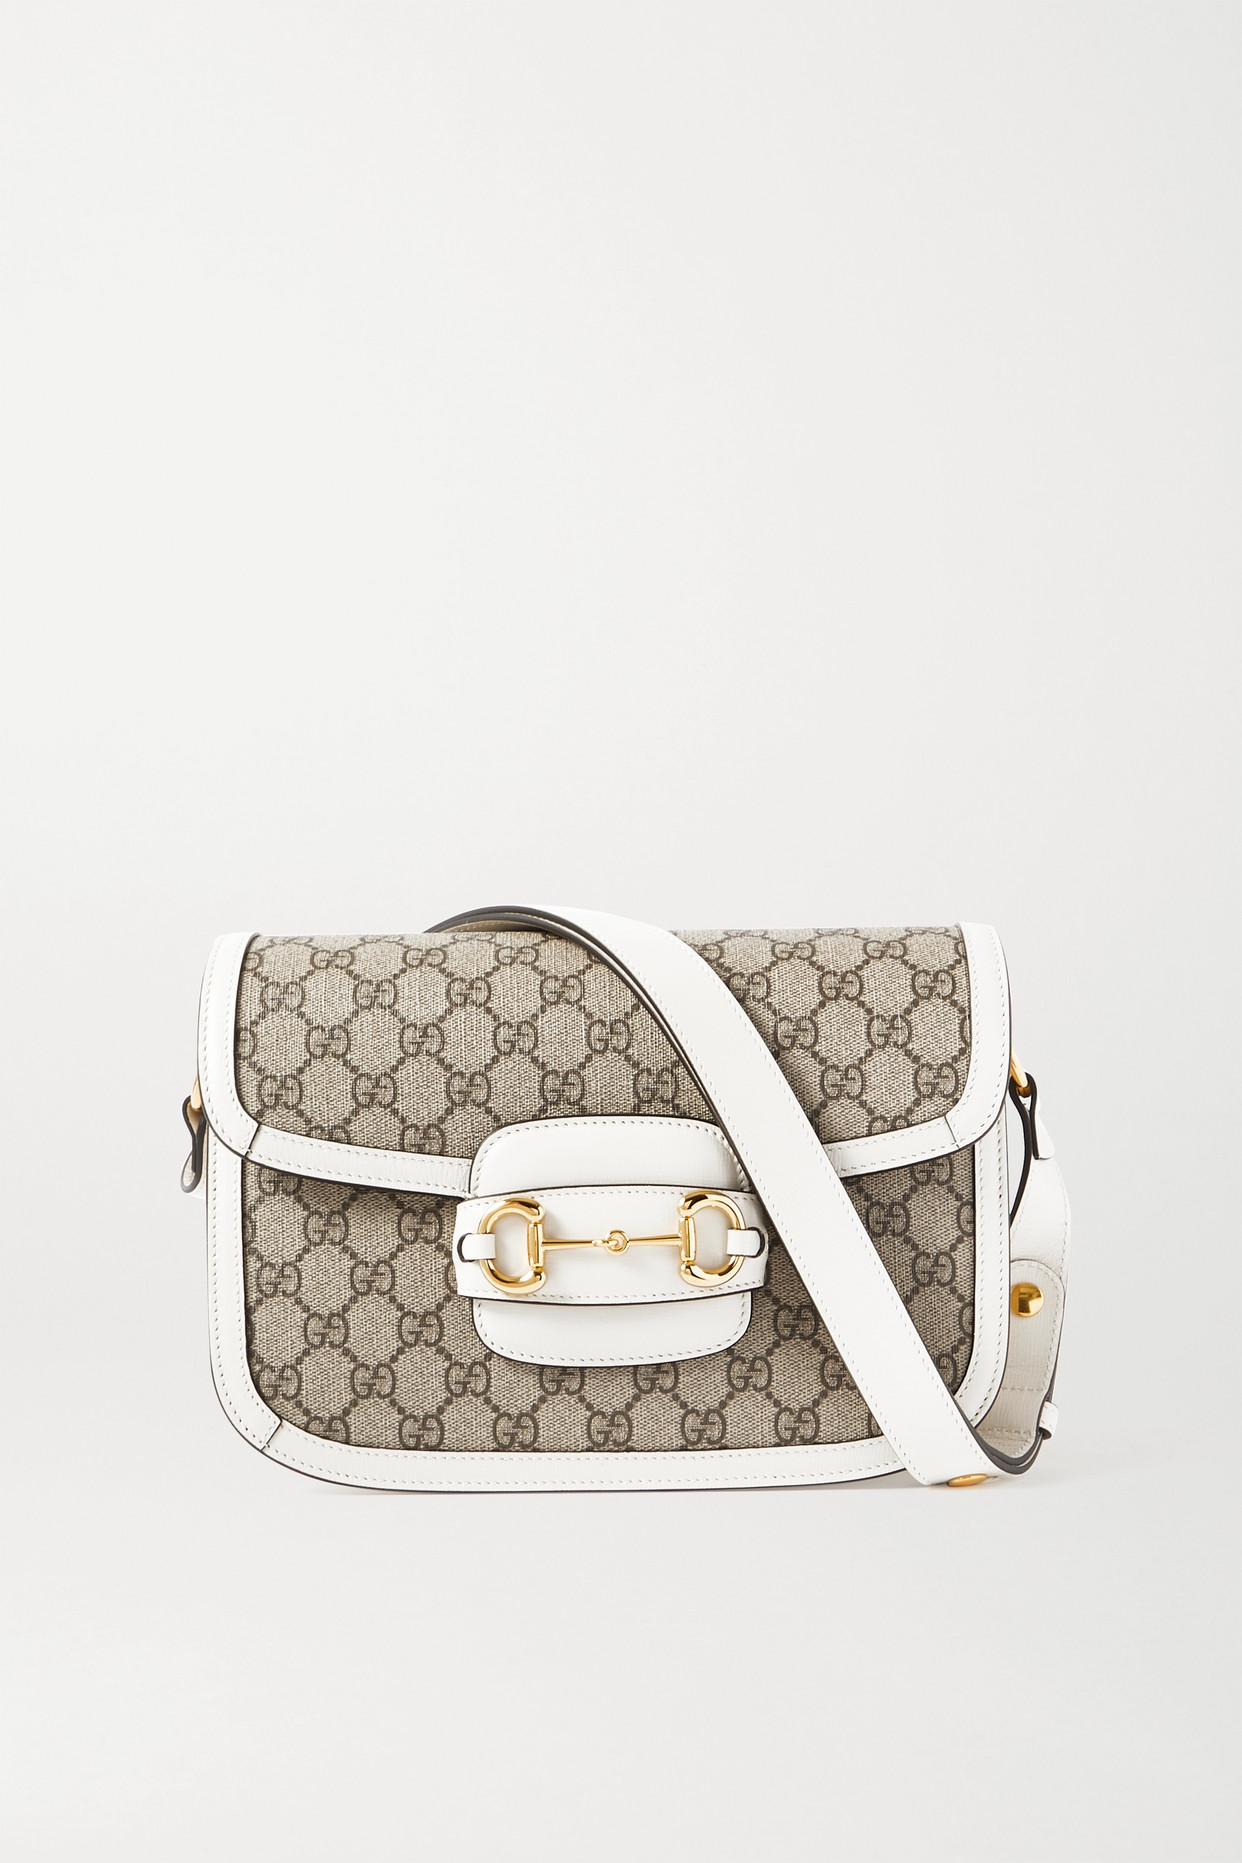 GUCCI - 1955 Horsebit-detailed Leather-trimmed Printed Coated-canvas Shoulder Bag - White - one size